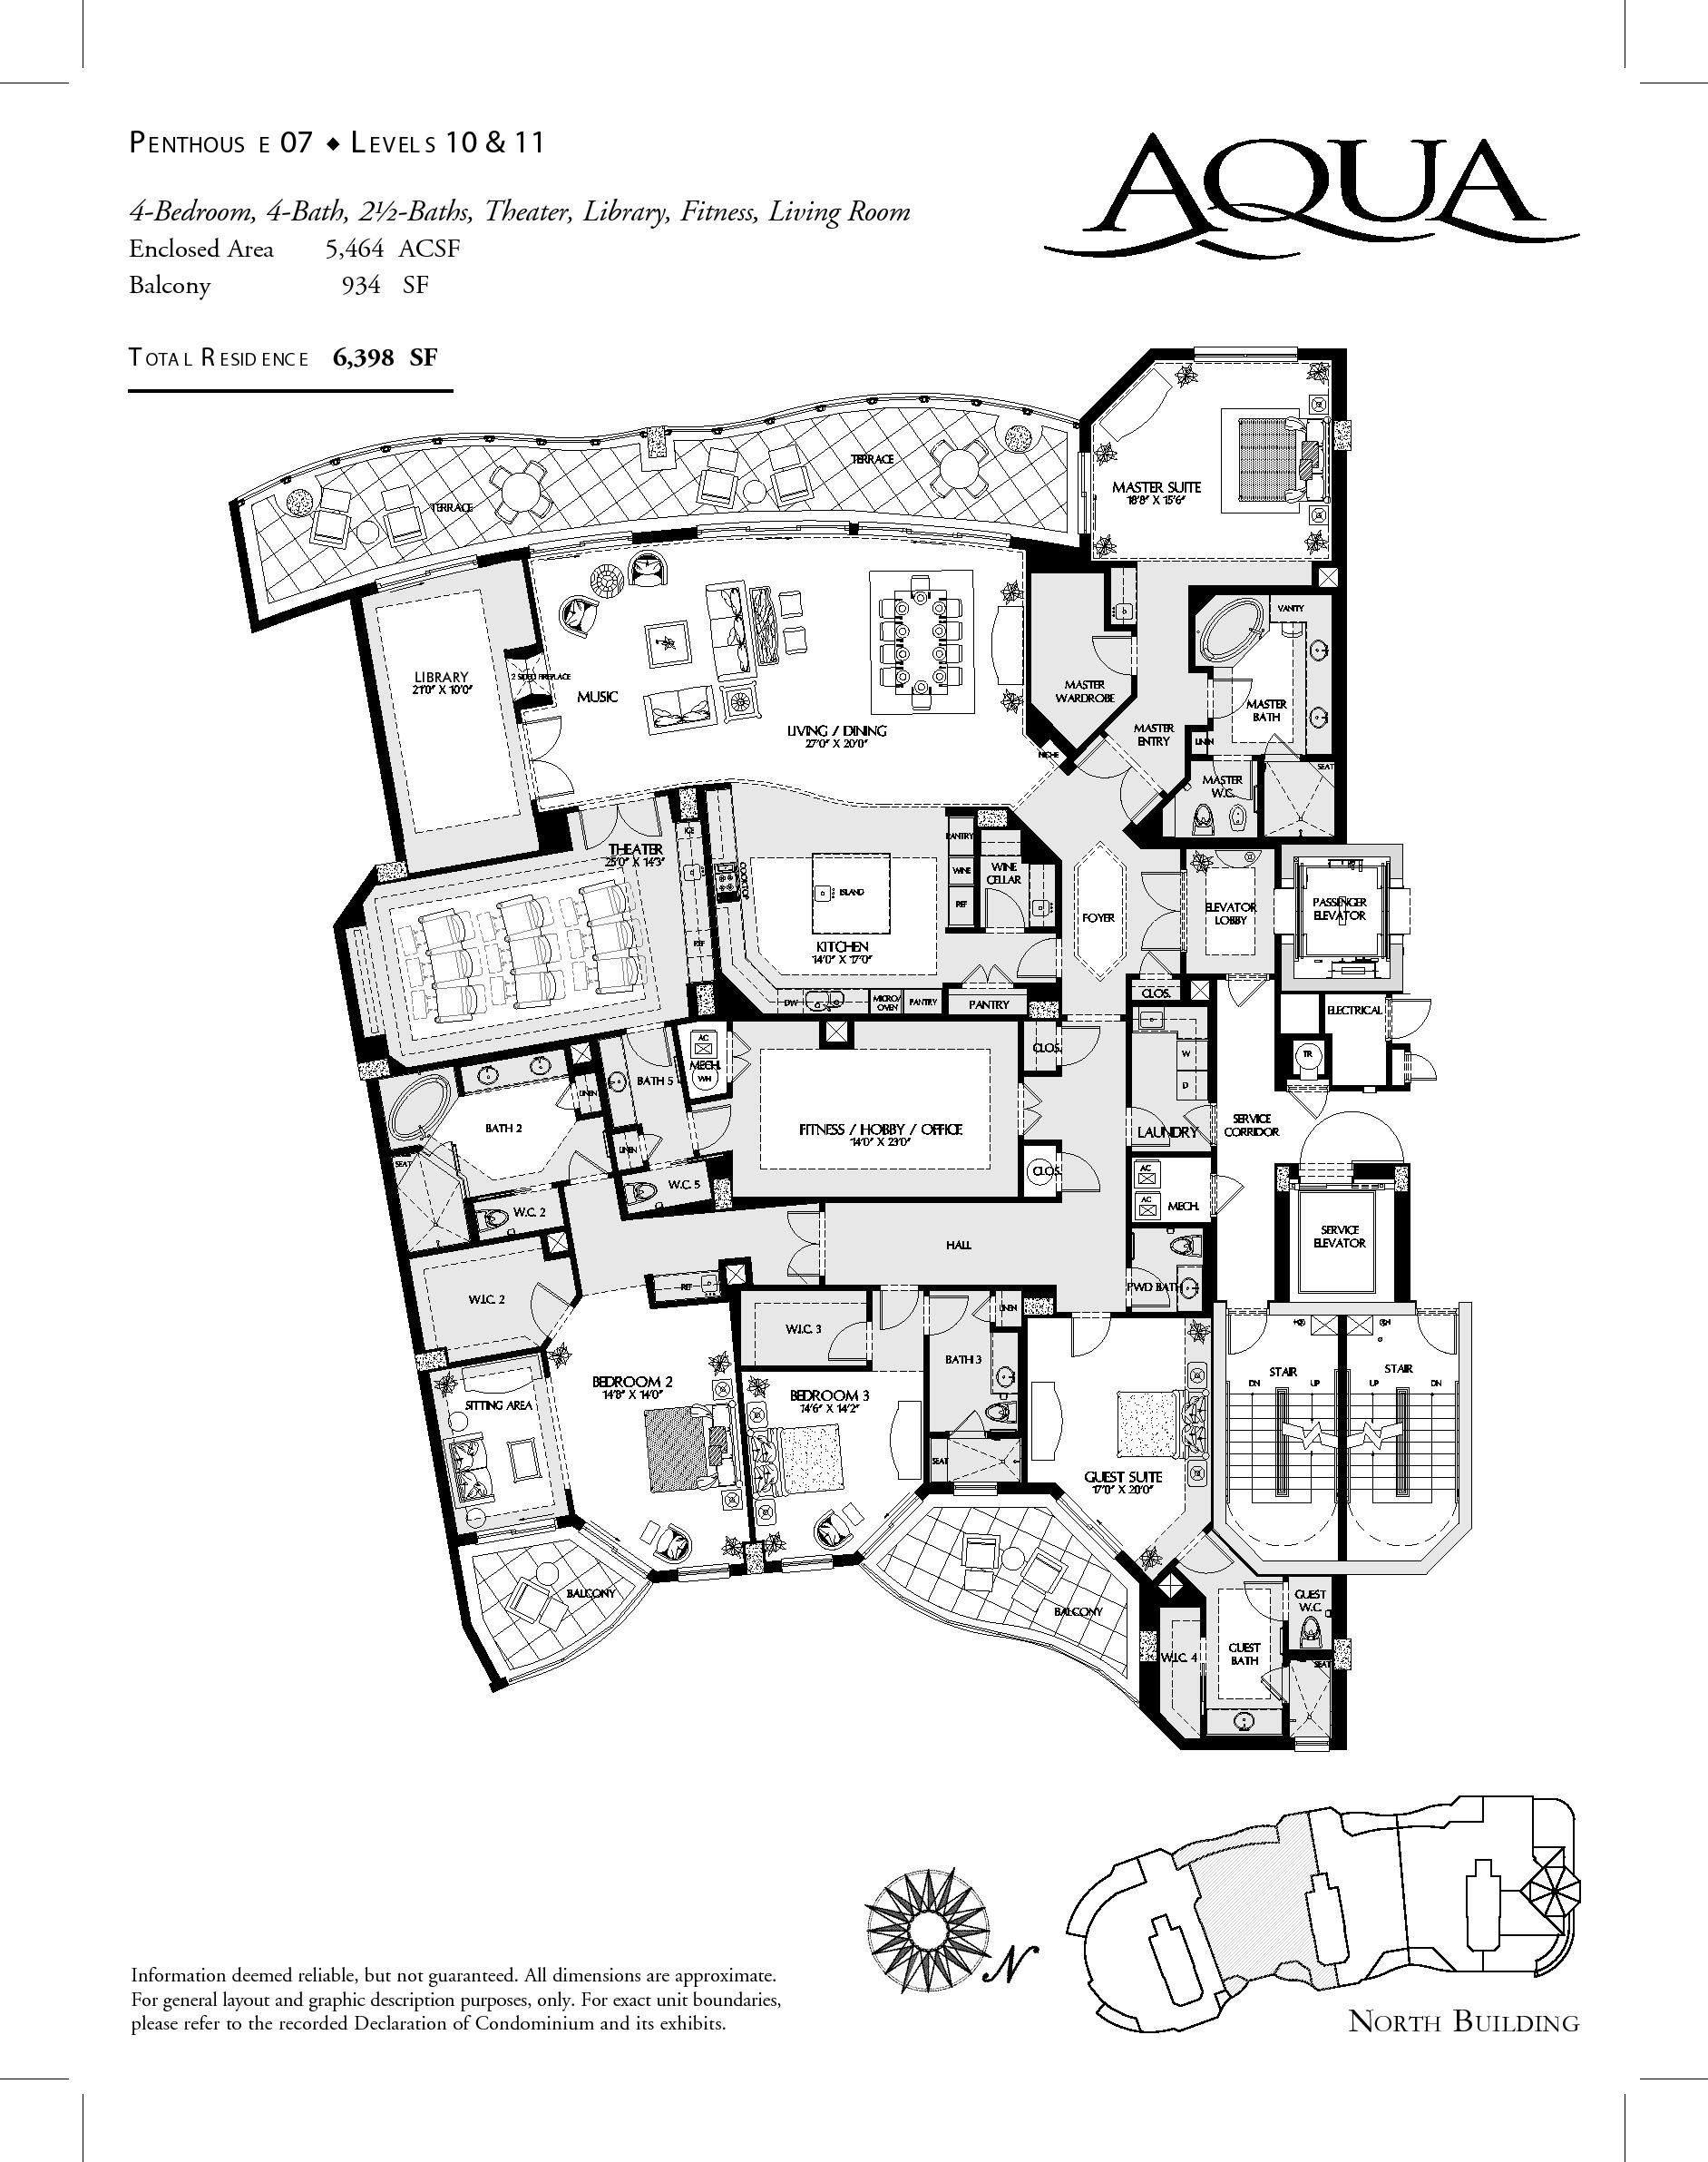 luxury penthouse floor plans design subject comes along 56 image of floor some of them are including the mansions at acqualina 3 - Luxury Penthouse Floor Plans